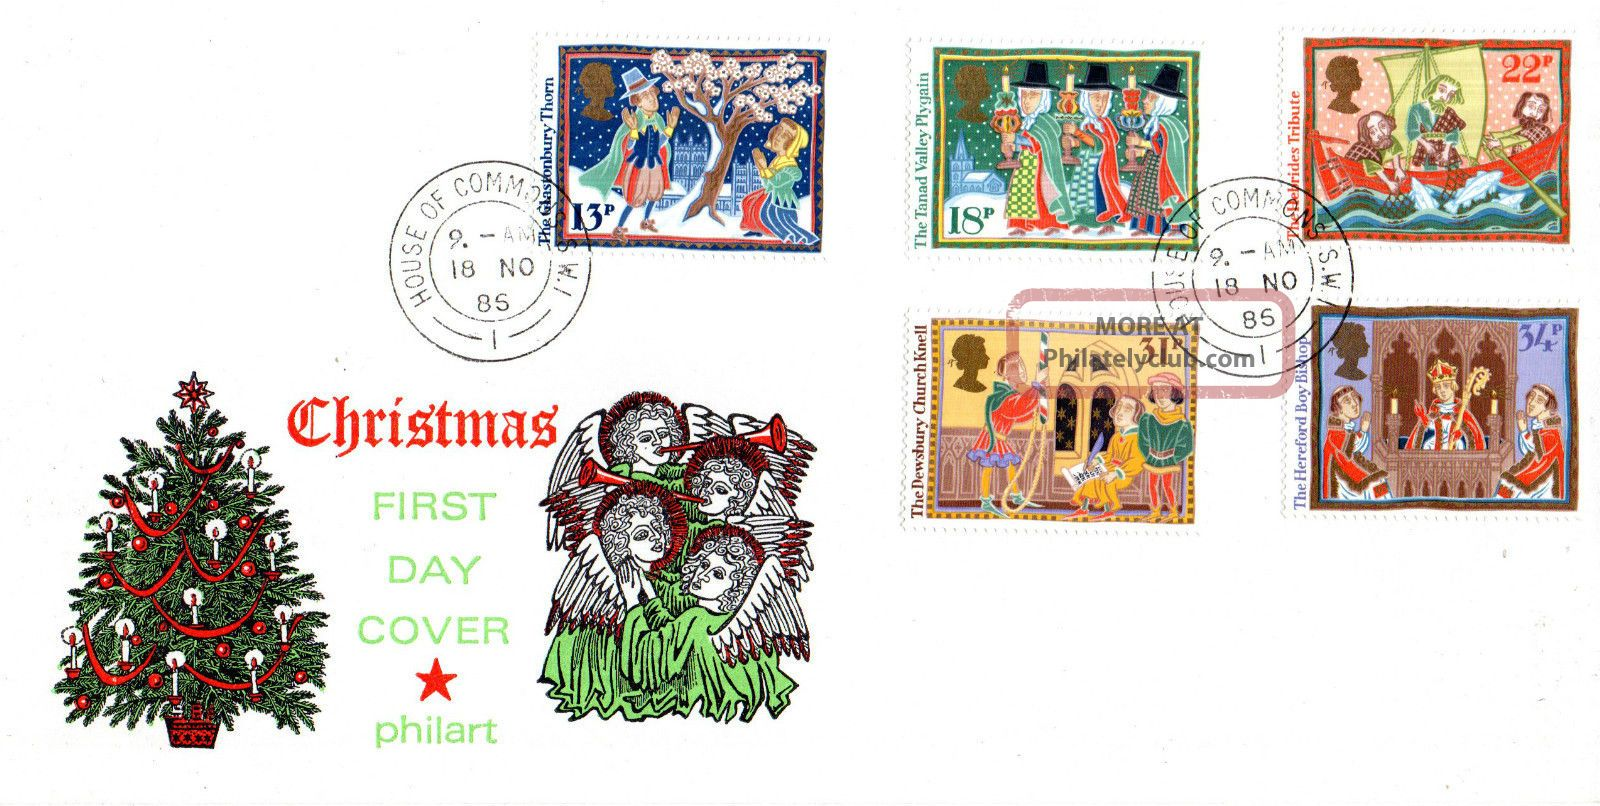 18 November 1986 Christmas Philart First Day Cover House Of Commons Sw1 Cds Topical Stamps photo